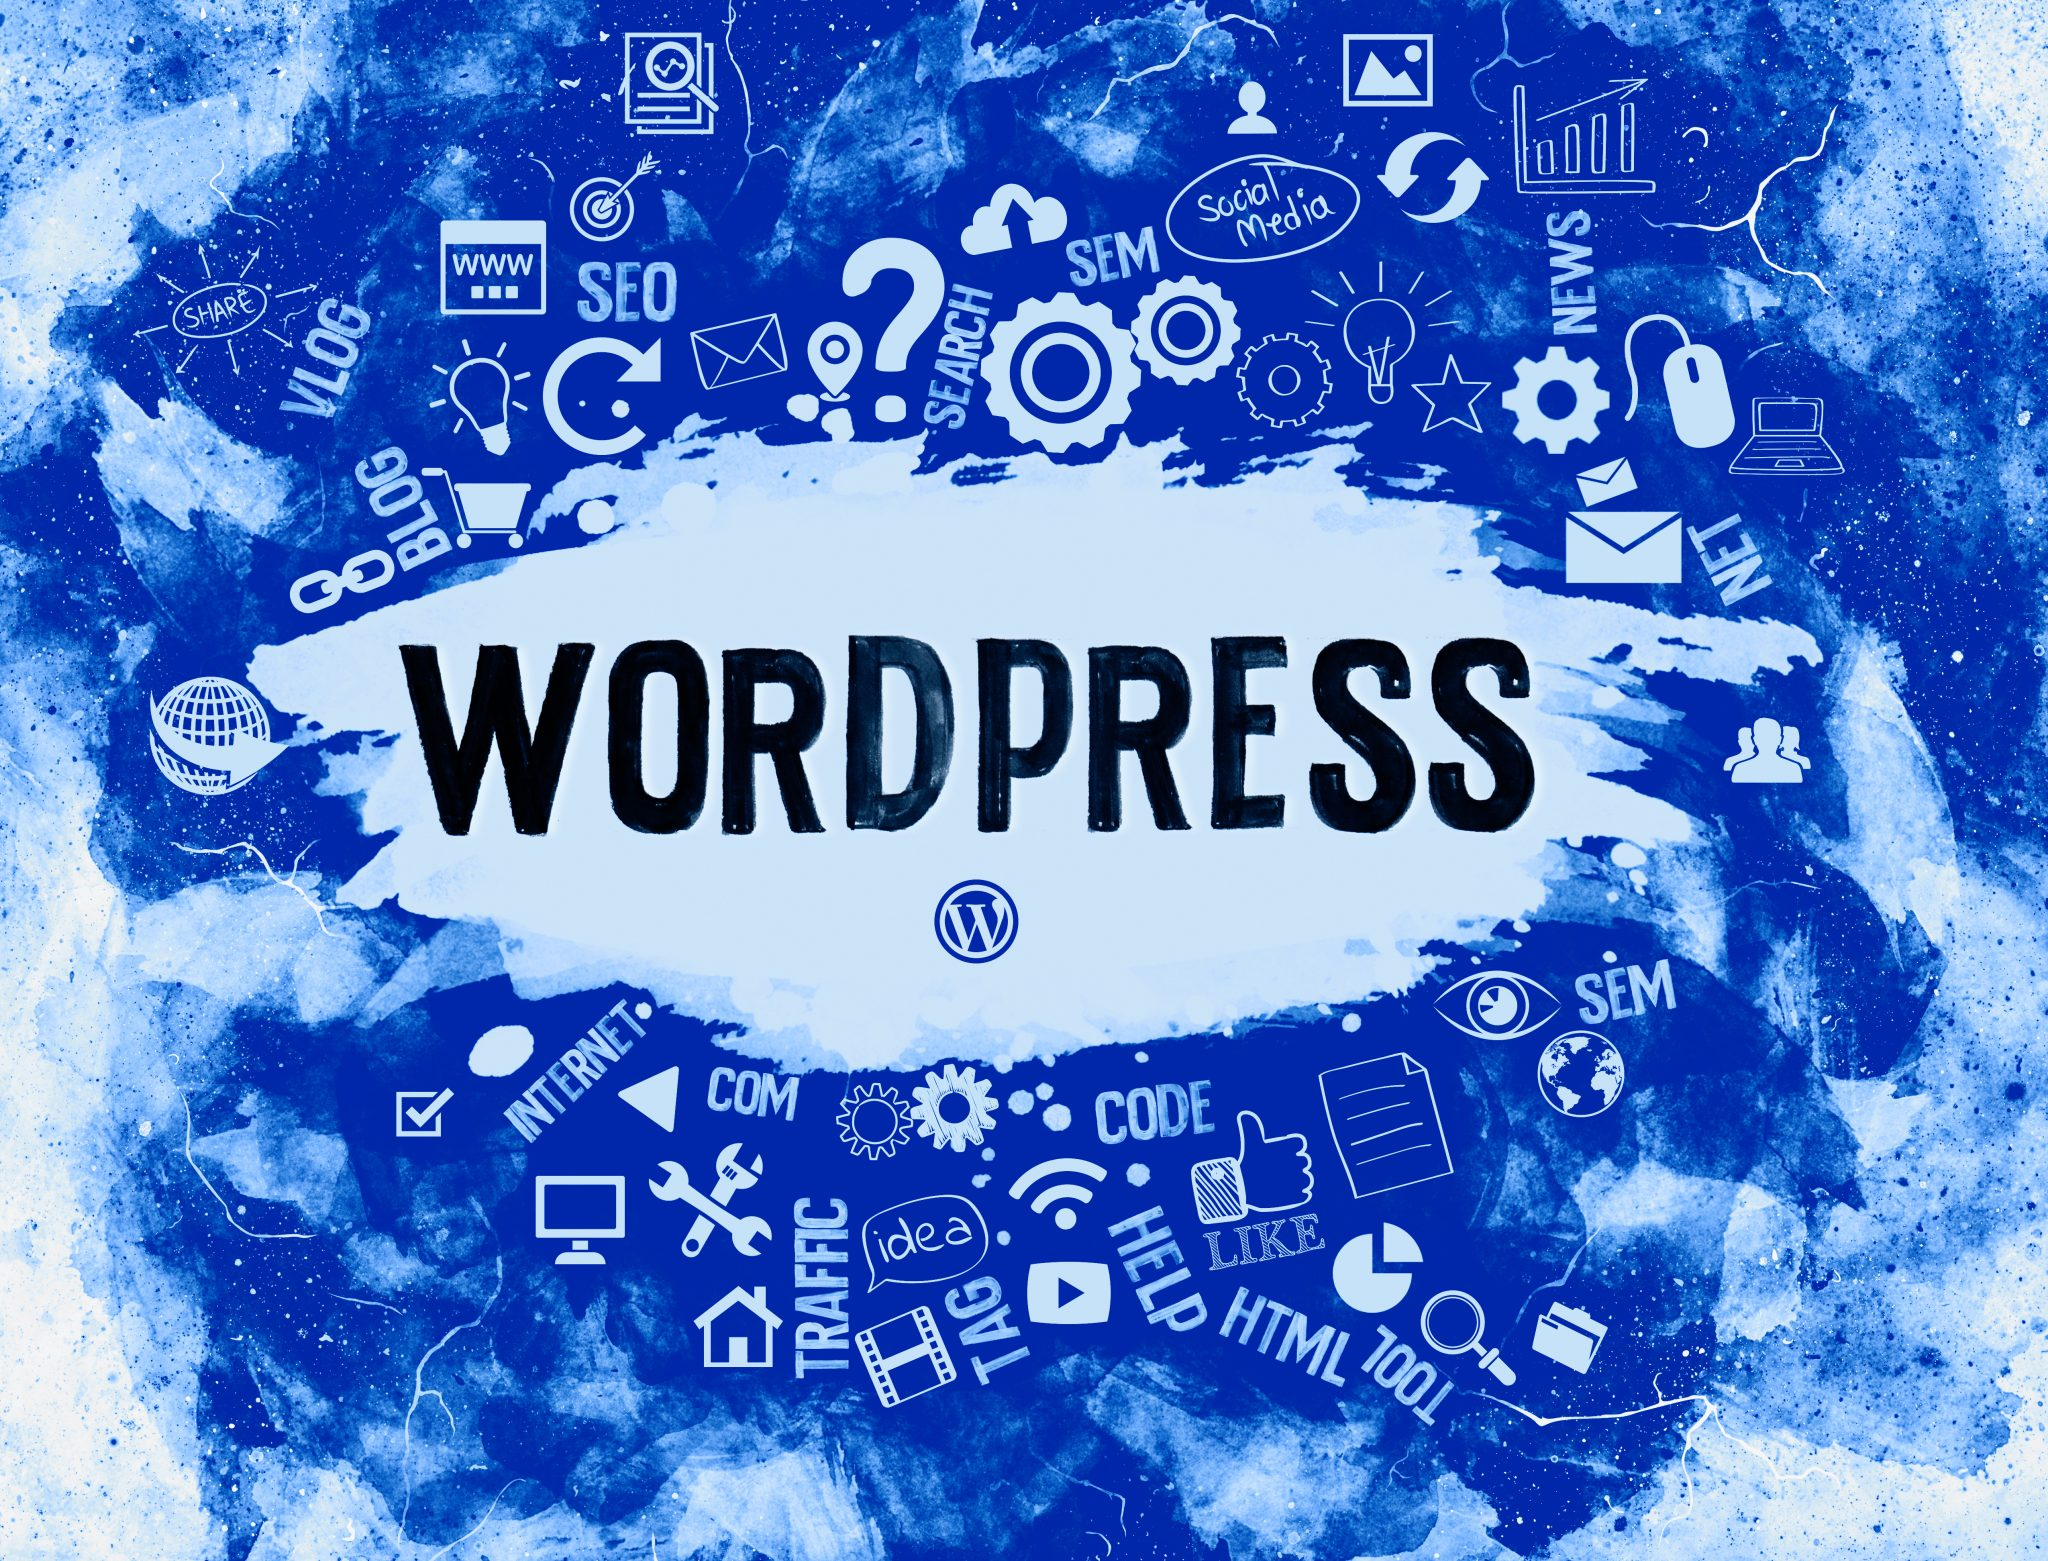 WordPress Maintenance in Panama - mantenimiento de WordPress en Panamá